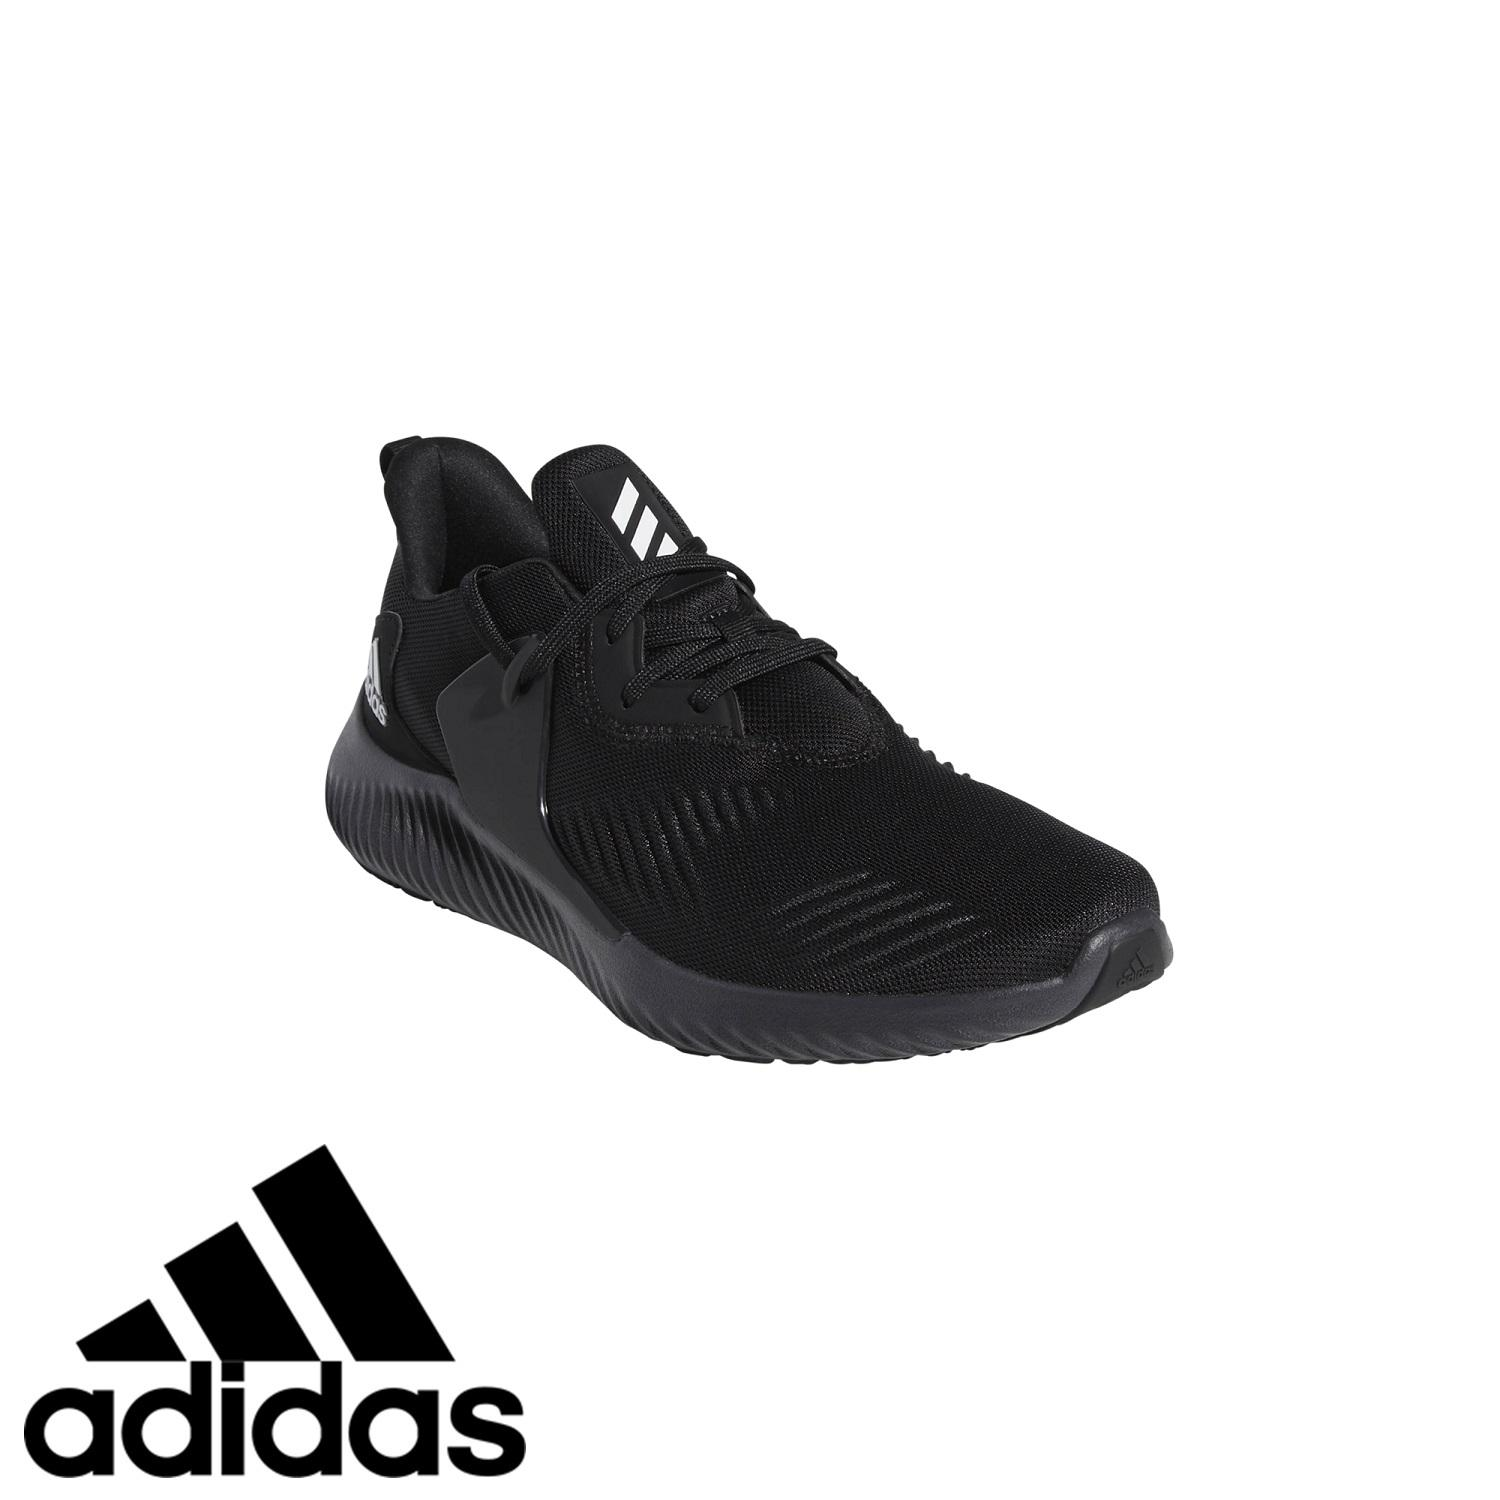 59c0c1b9d285 Adidas Sports Shoes Philippines - Adidas Sports Clothing for sale ...